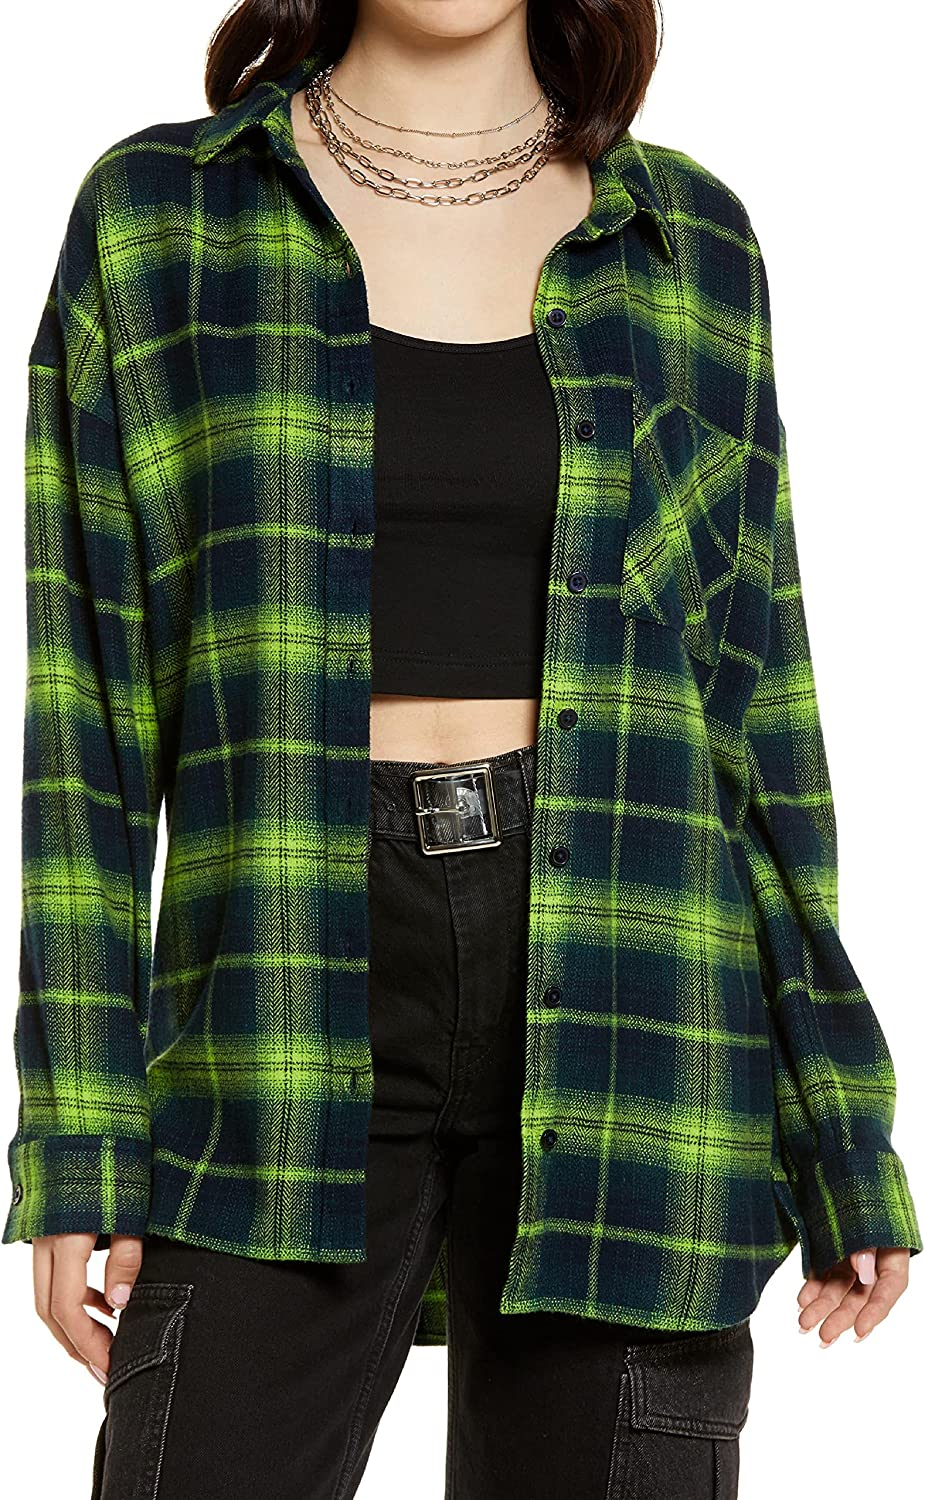 Women's Flannel Plaid Shirts Long Sleeves Oversized Work Button Down with Pockets Cardigan Roll Up Tops